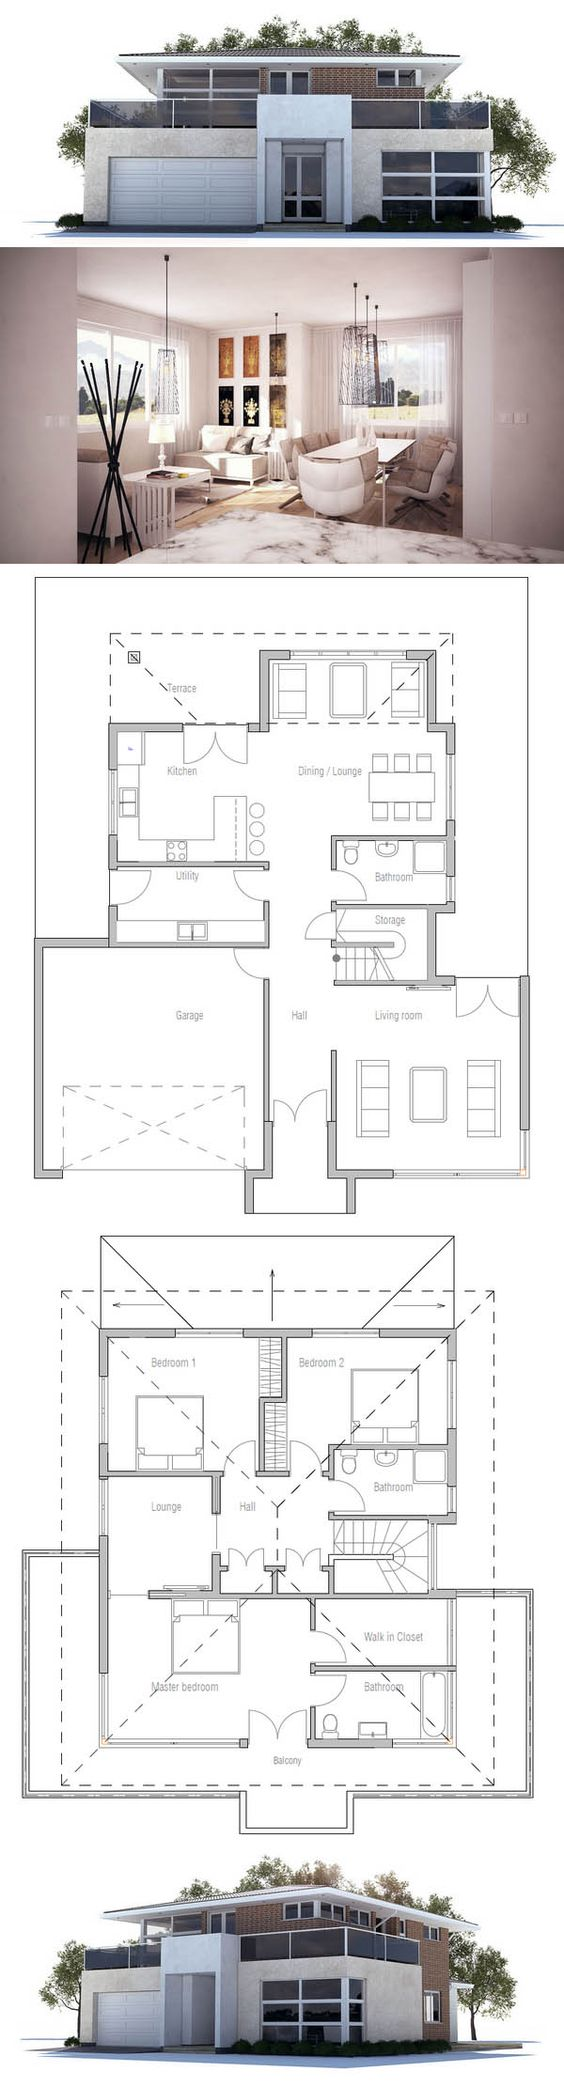 House Plan Home Design Pinterest Hauspläne, Muster Stoff und ... size: 564 x 2087 post ID: 0 File size: 0 B